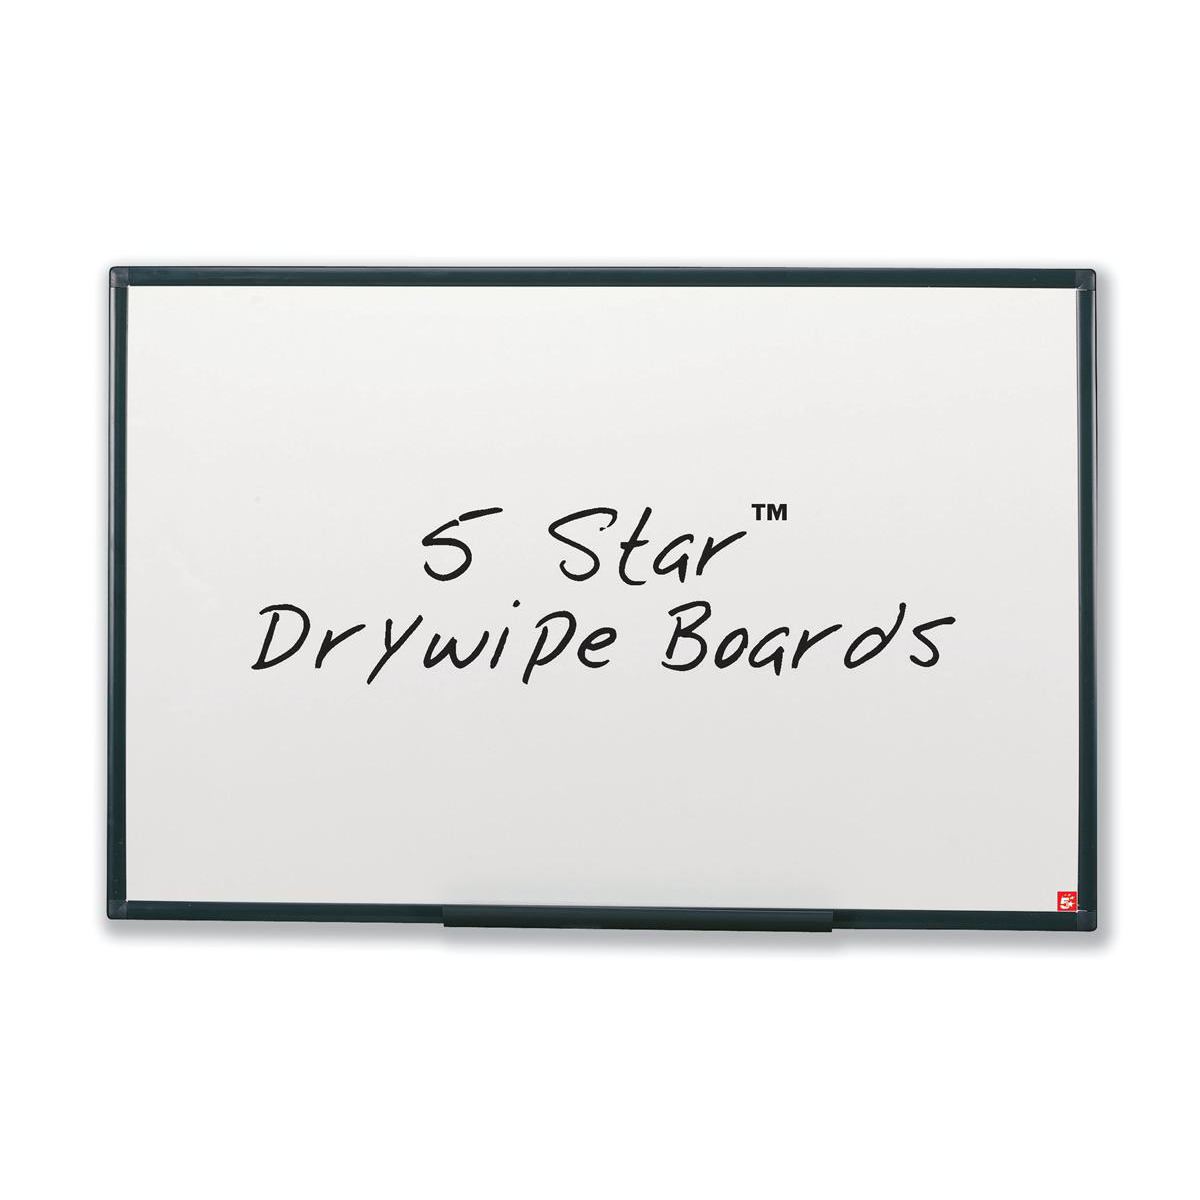 5 Star Office Drywipe Board Lightweight with Fixing Kit and Detachable Pen Tray W600xH450mm